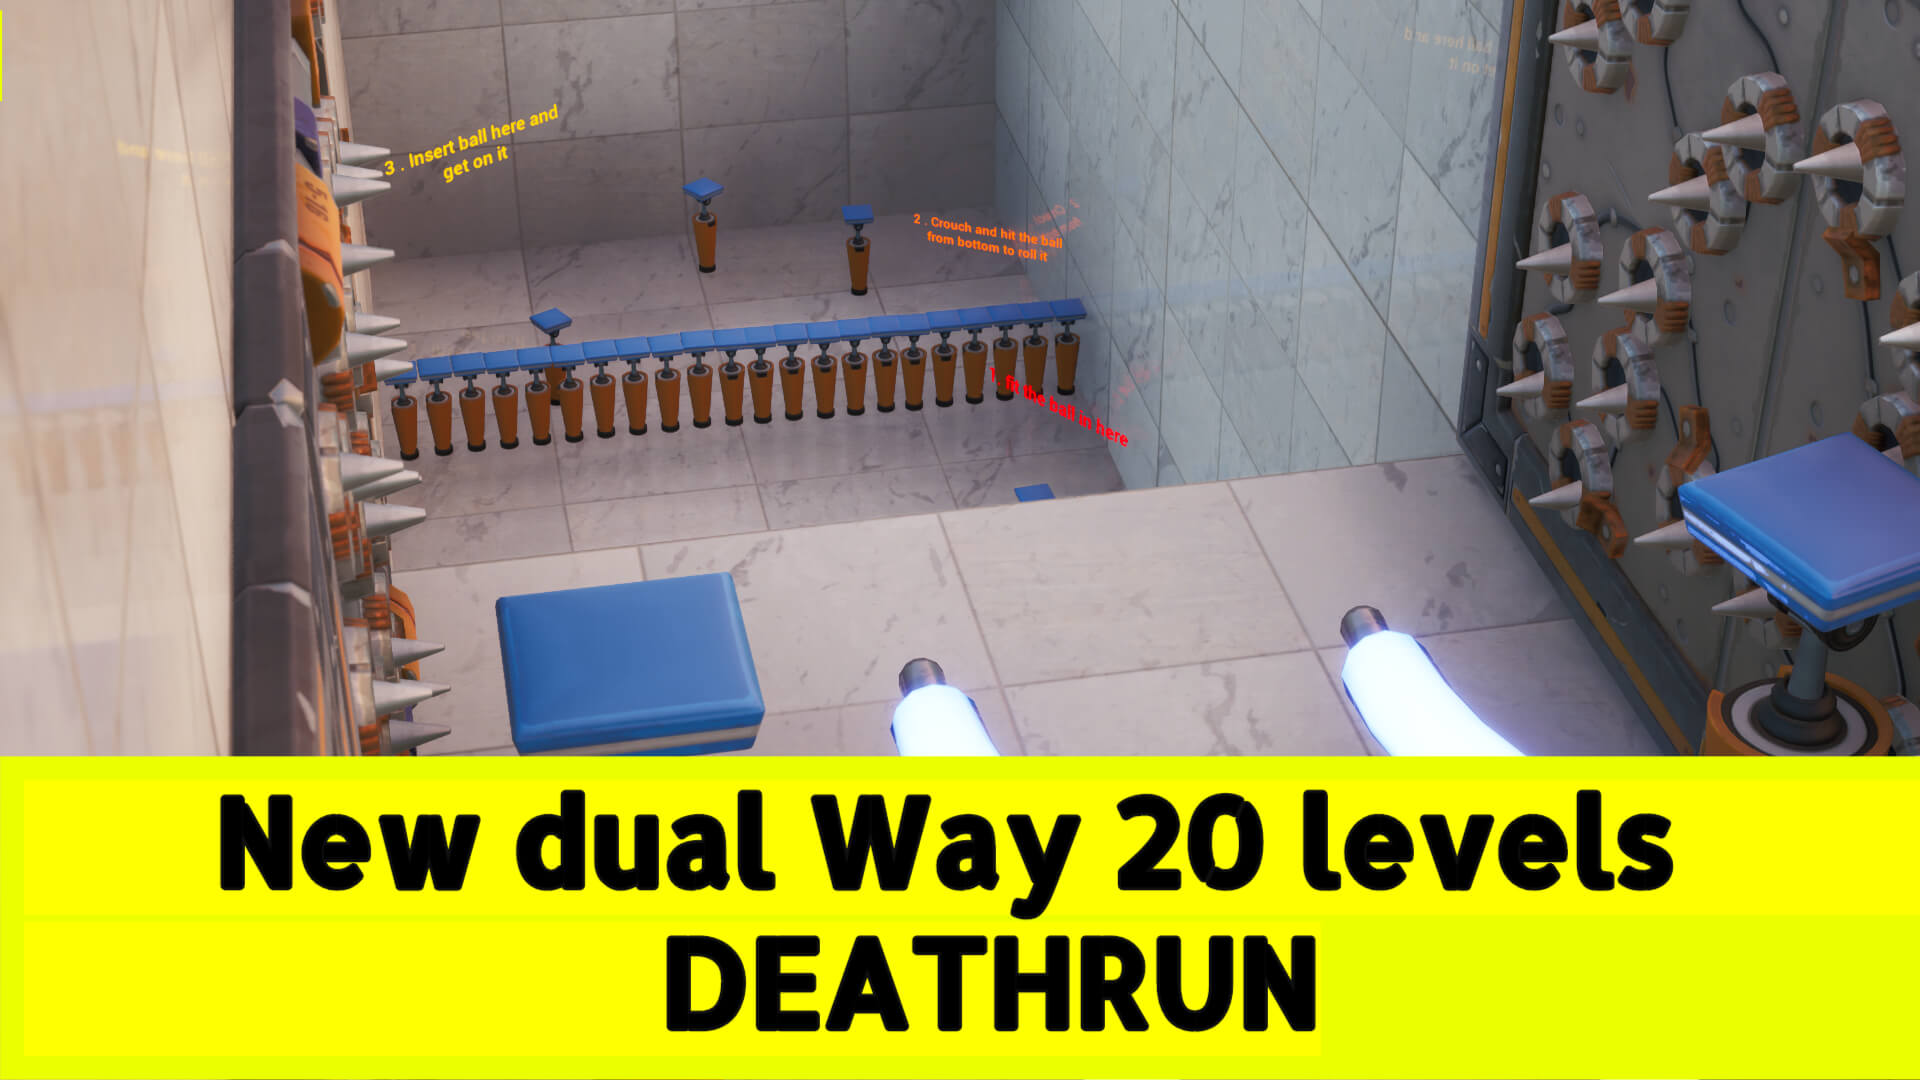 DUAL CHOICE 20 LEVEL DEATHRUN